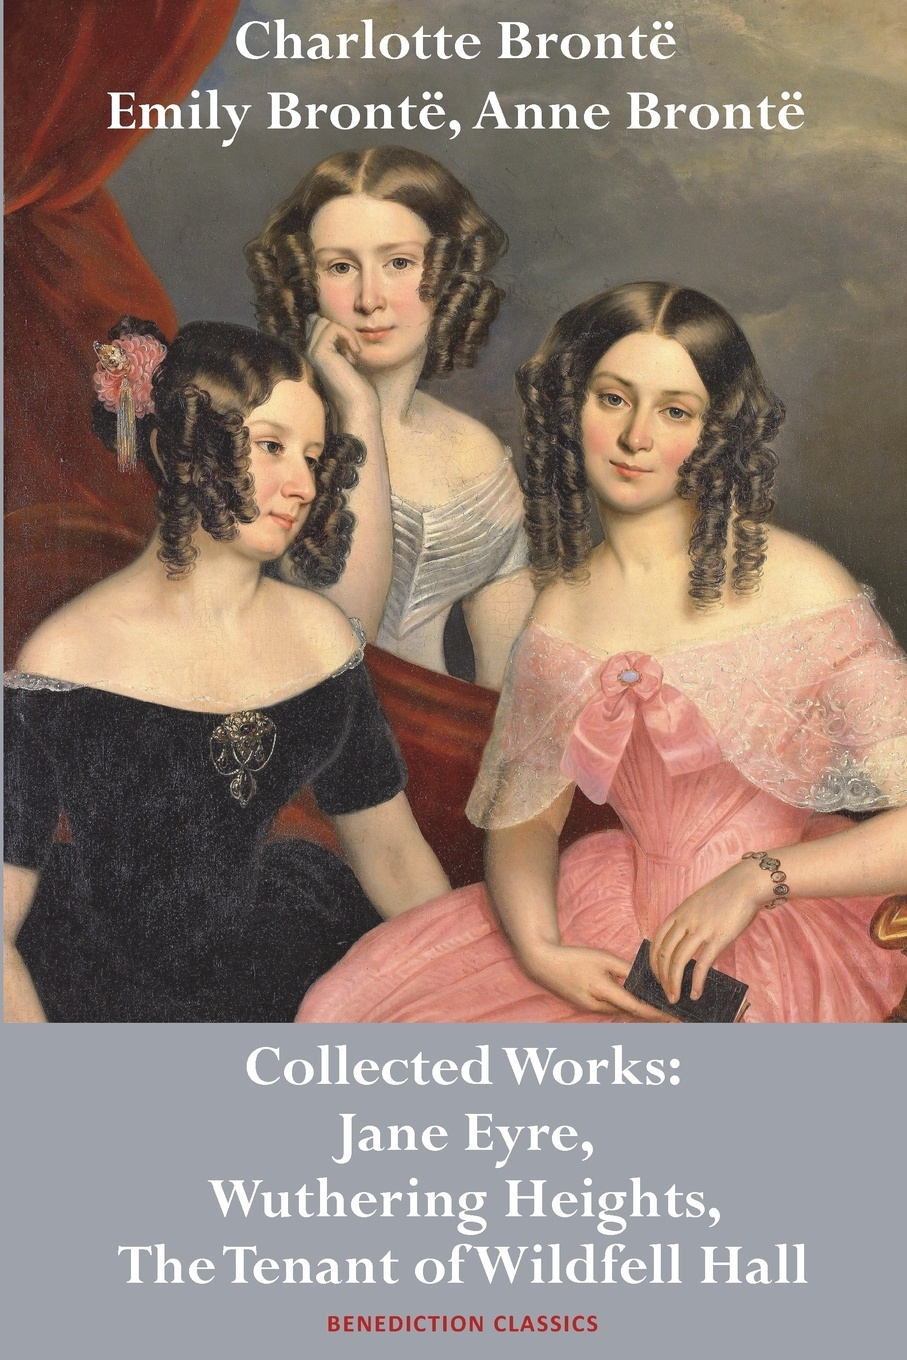 Charlotte Brontë, Emily Anne Brontë Bronte, Bronte and Bronte. Collected Works: Jane Eyre, Wuthering Heights, The Tenant of Wildfell Hall